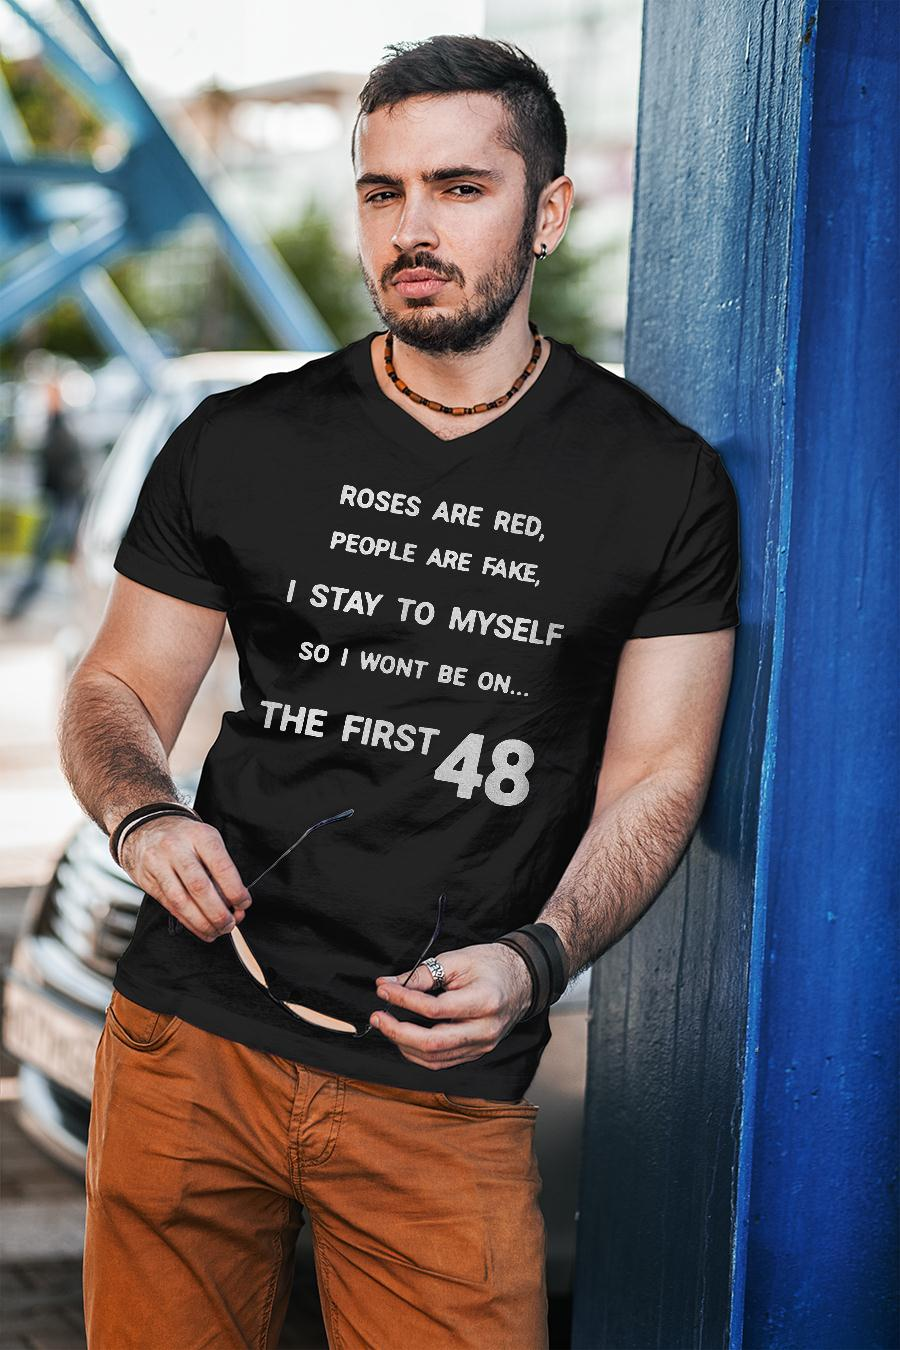 Roses are red people are fake I stay to myself so I wont be on Shirt unisex